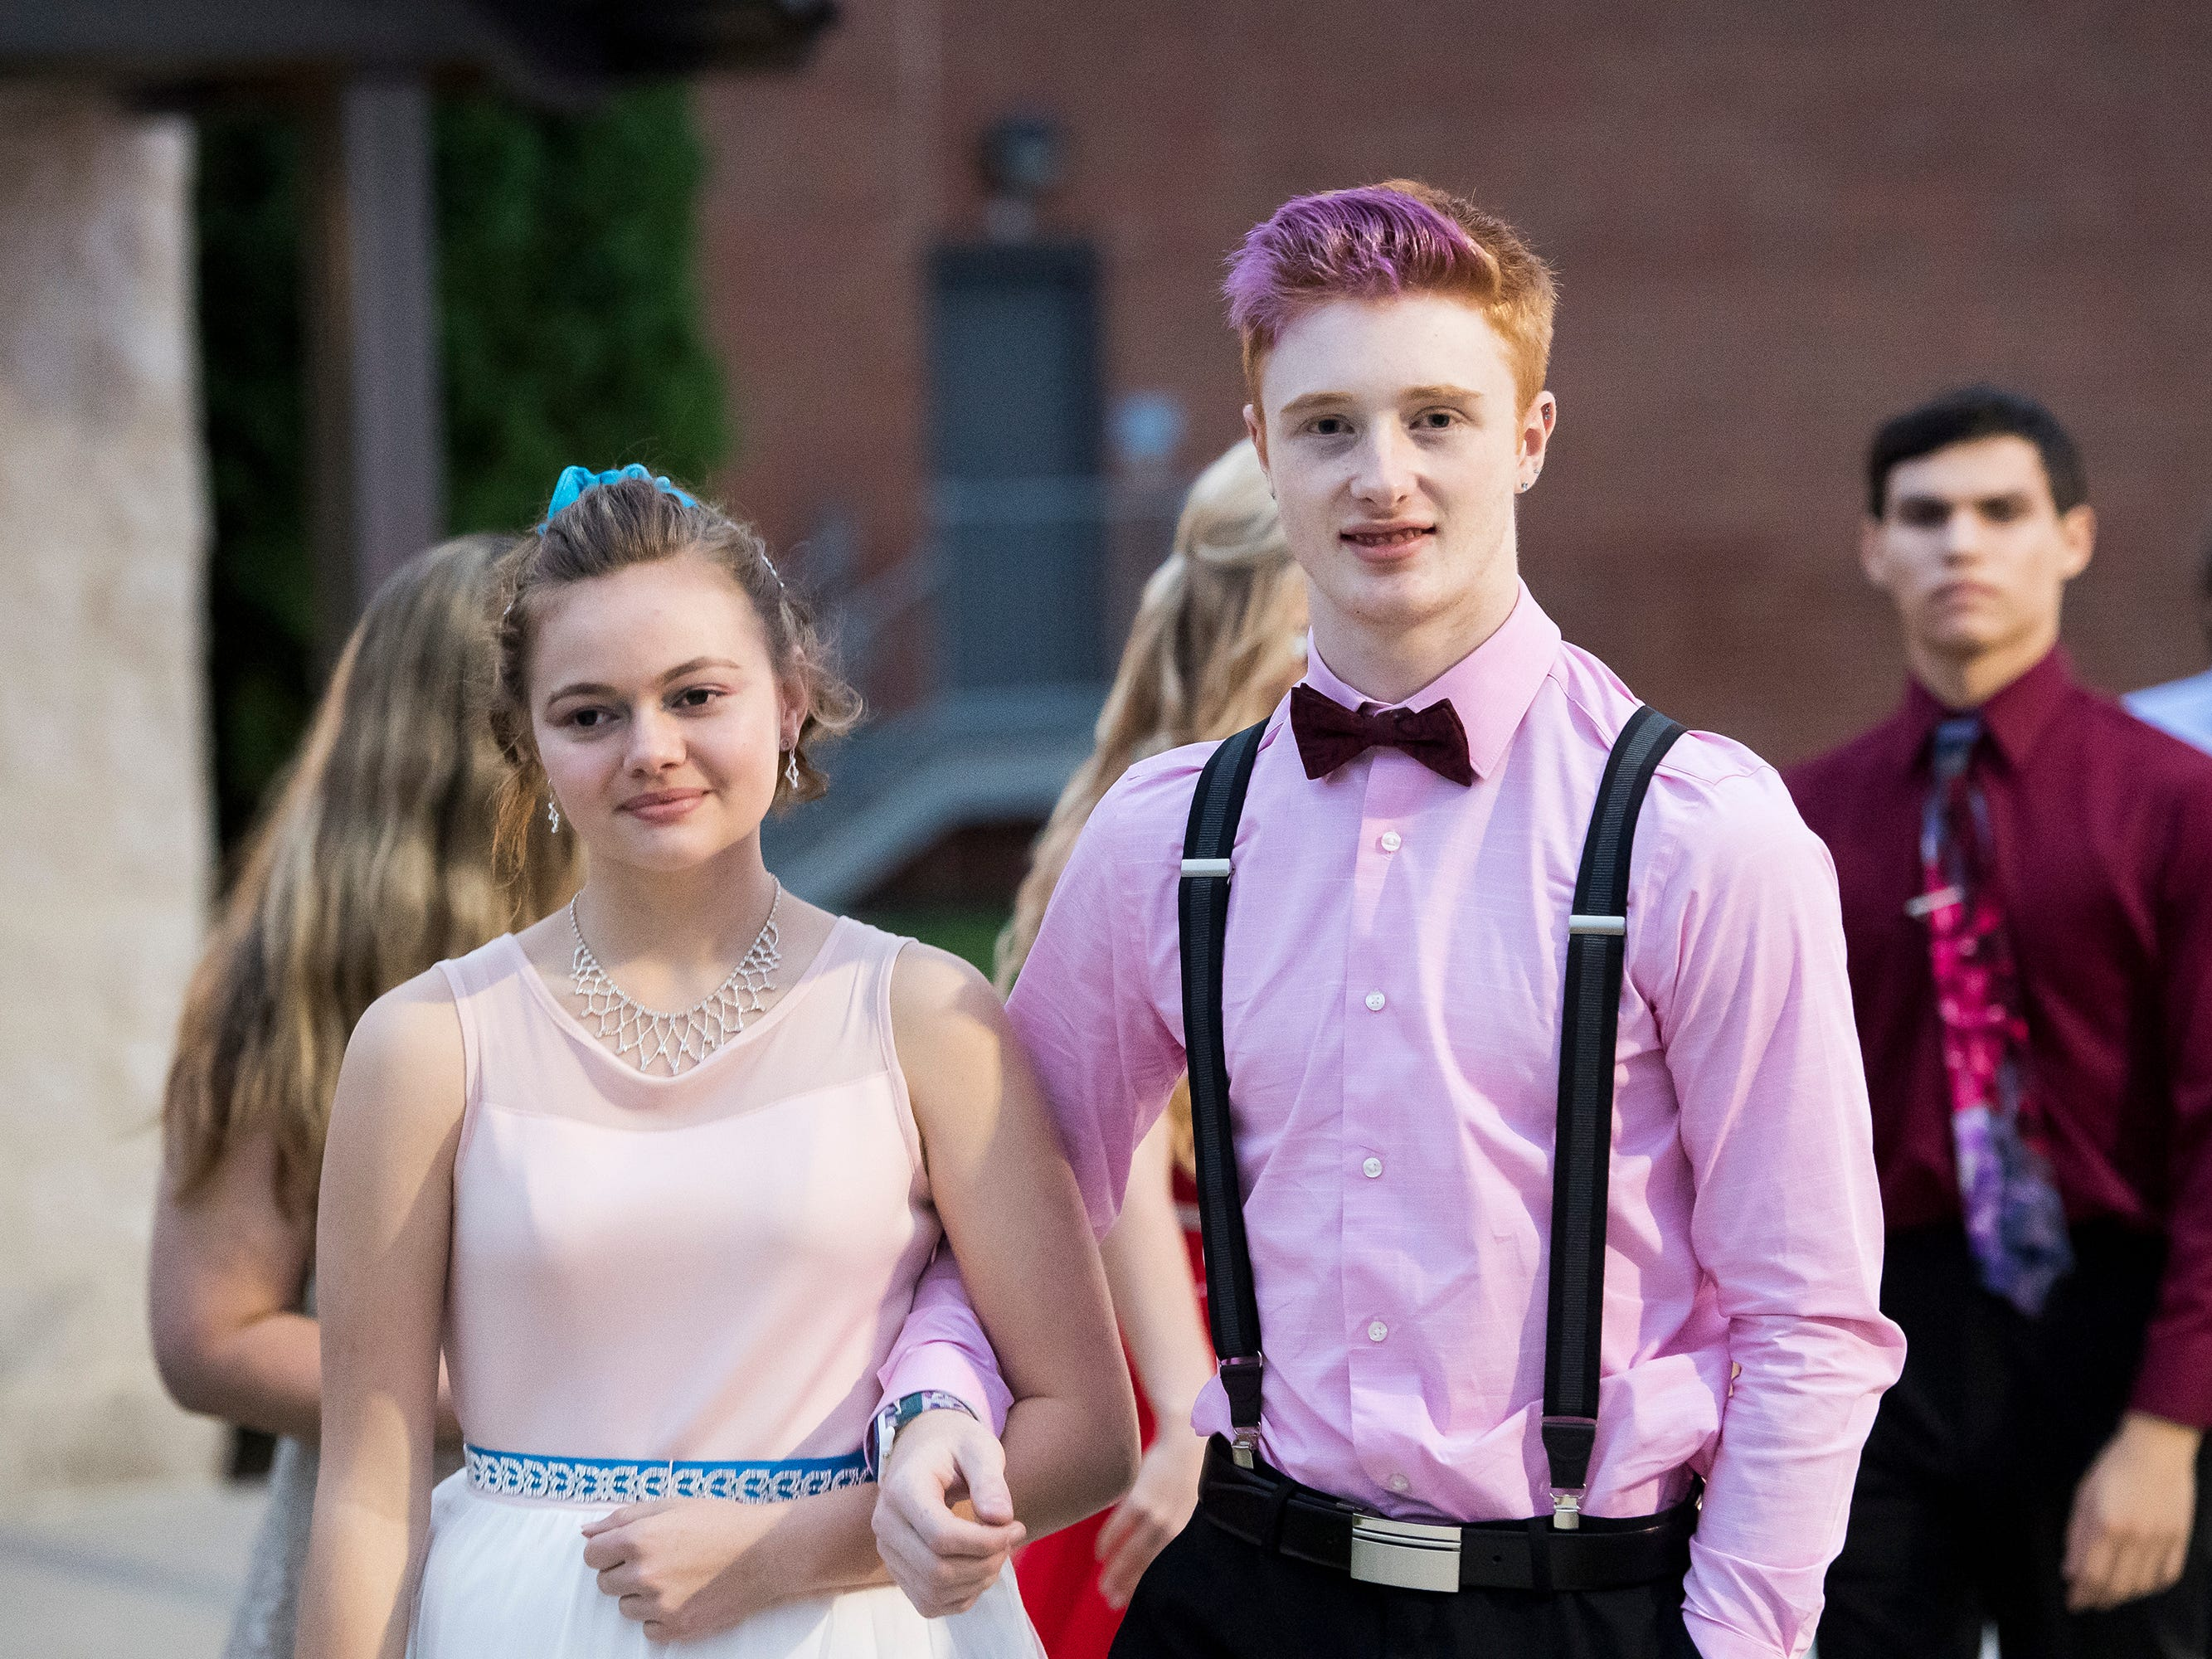 Students arrive at Bermudian Springs High School's homecoming dance on Saturday, October 6, 2018.